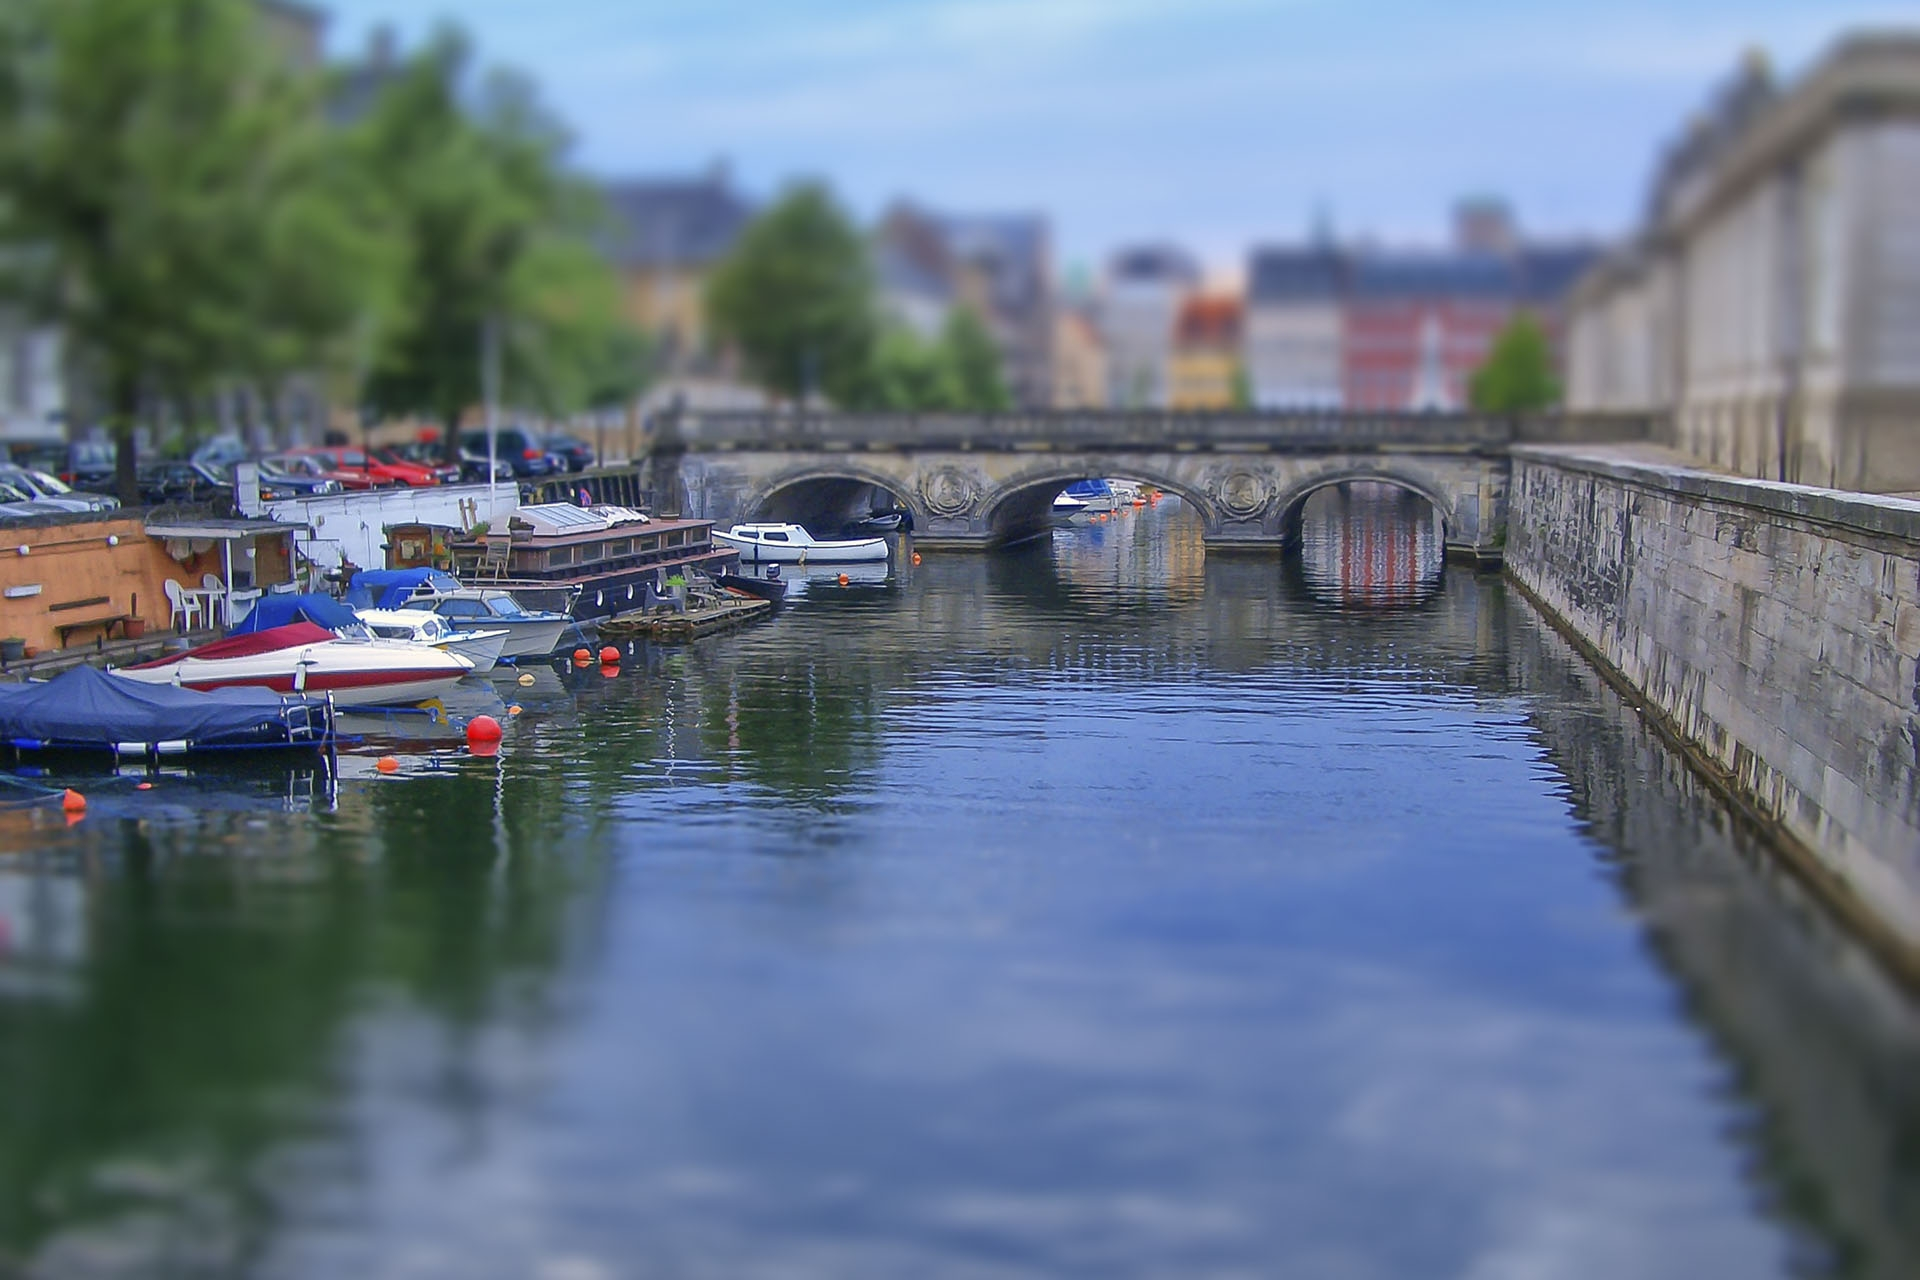 Cityscape of Copenhagen, Denmark. Tilt–shift effect applied